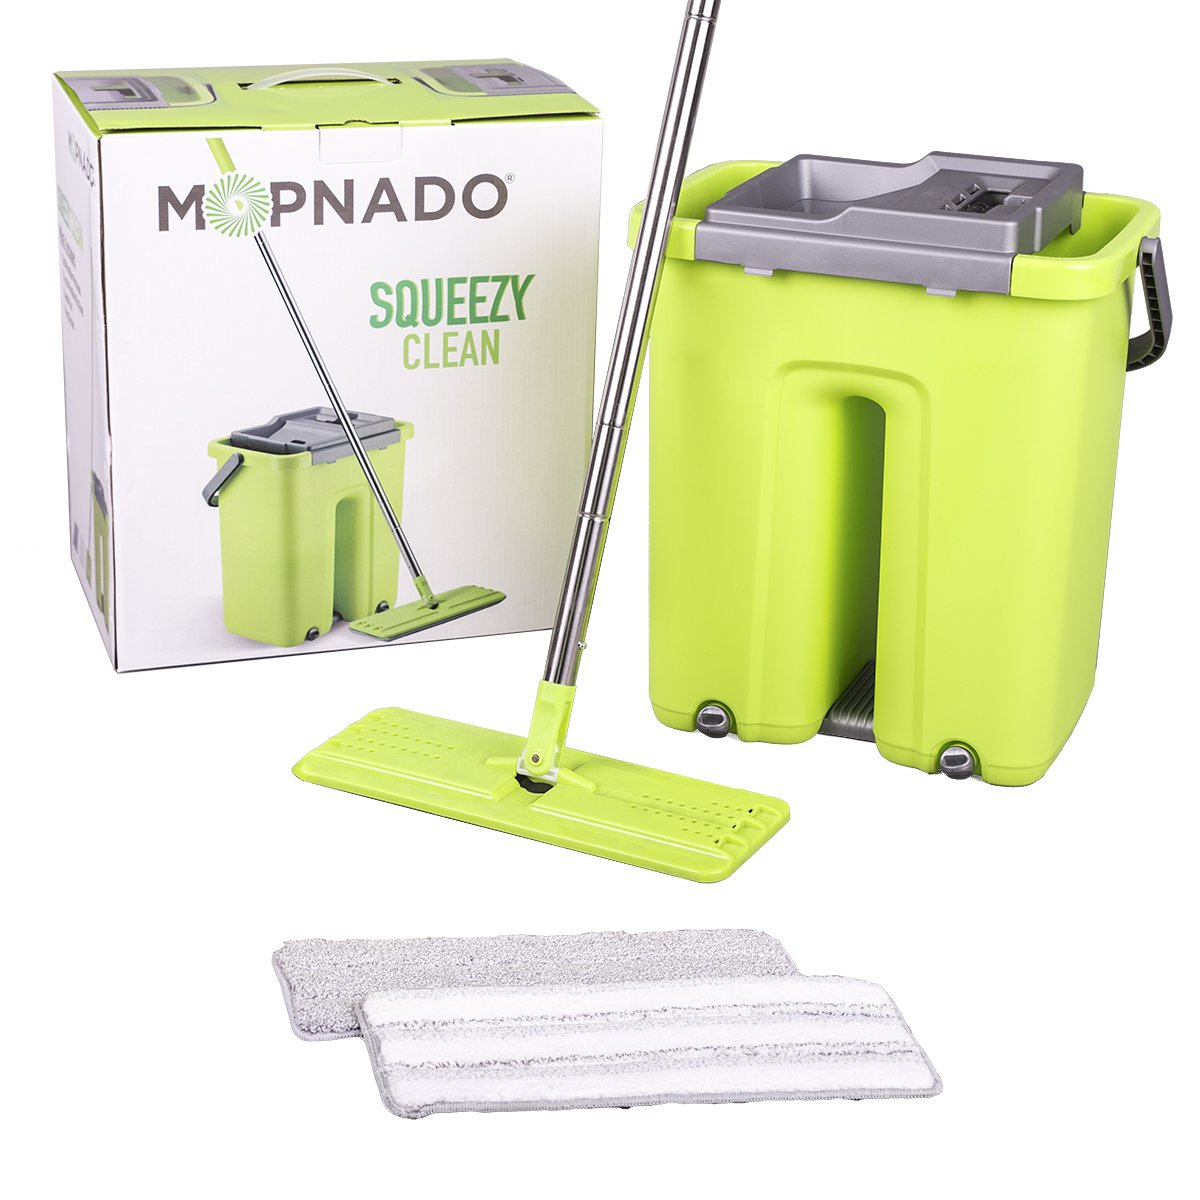 Mopnado Squeezy Clean Self Cleaning Flat mop System with 2 Washable Microfiber Mop Heads